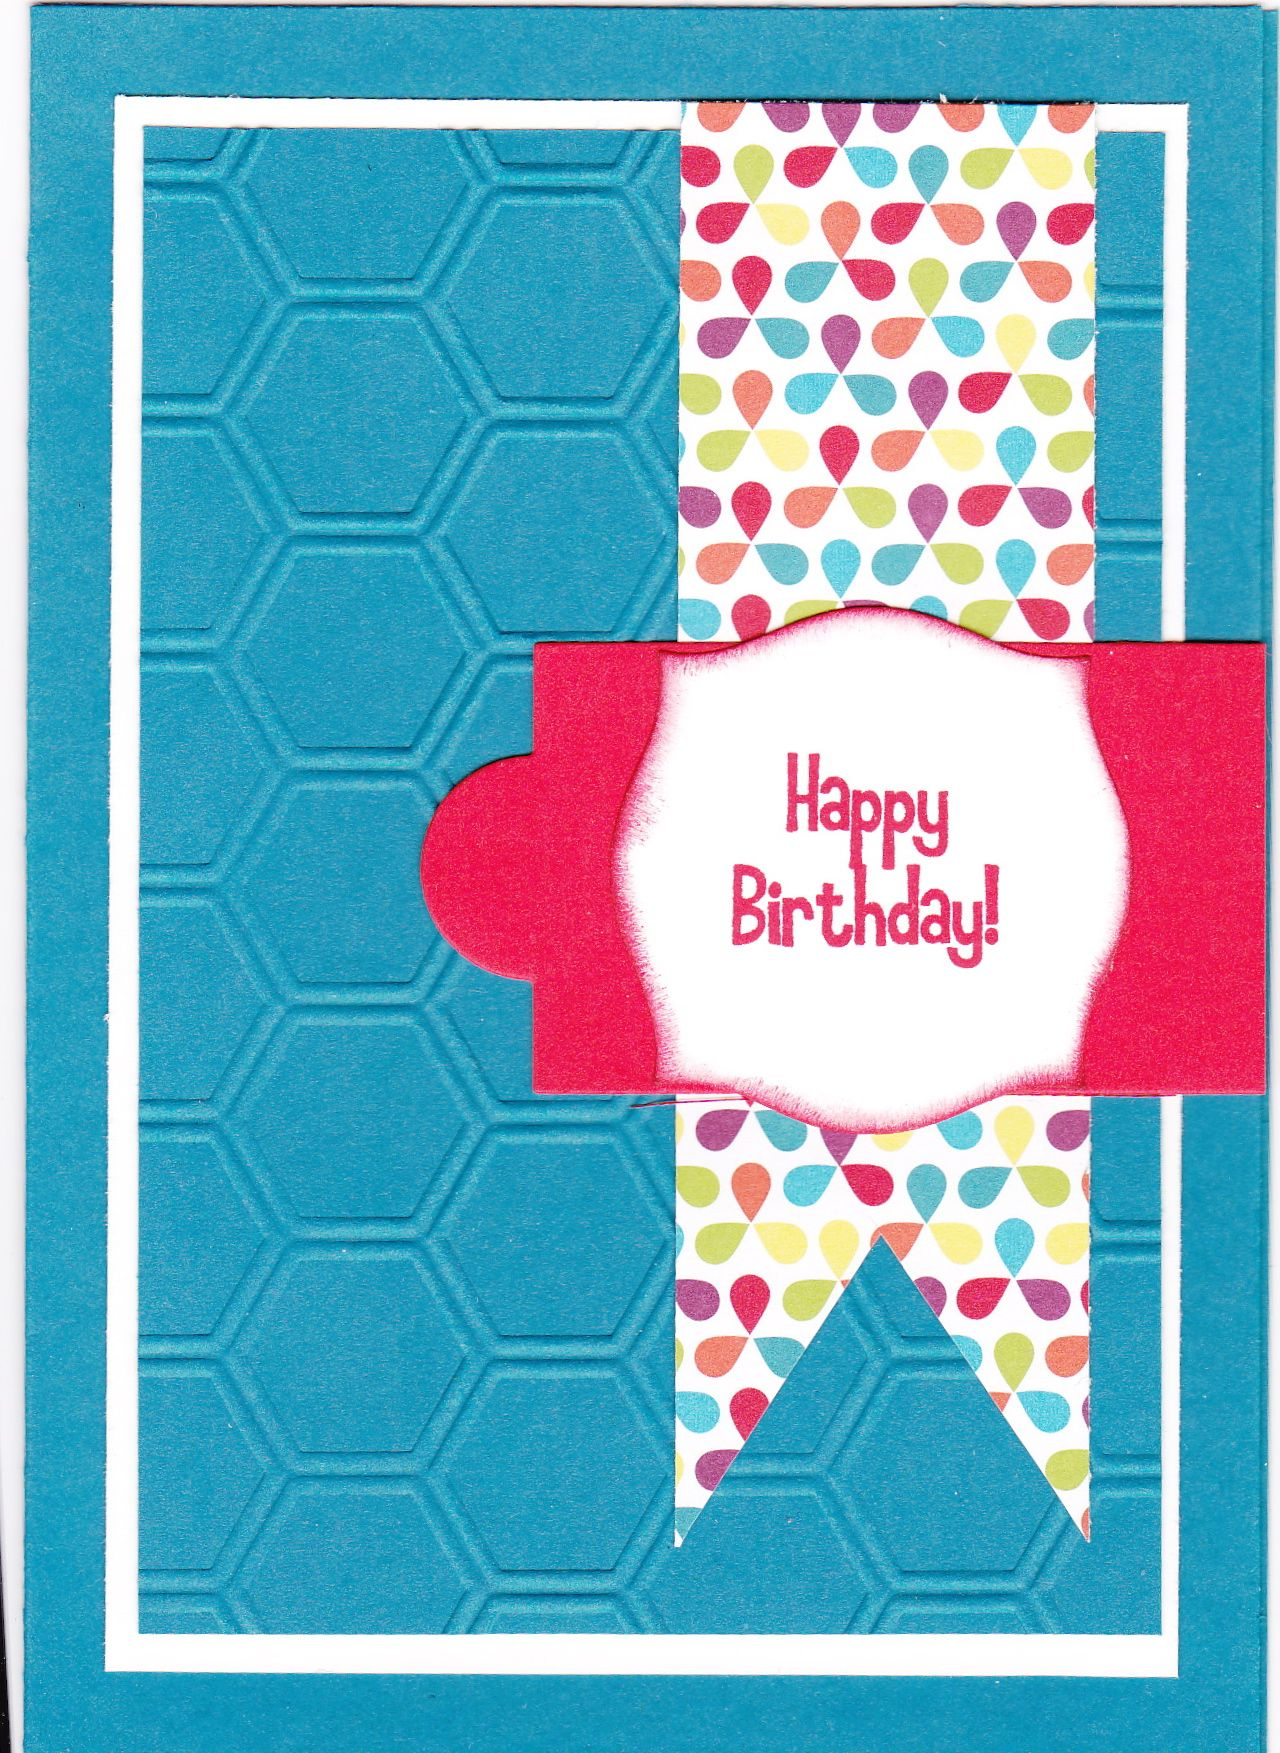 7 Year Old Boys Birthday Card Old Birthday Cards Birthday Cards For Boys Birthday Cards